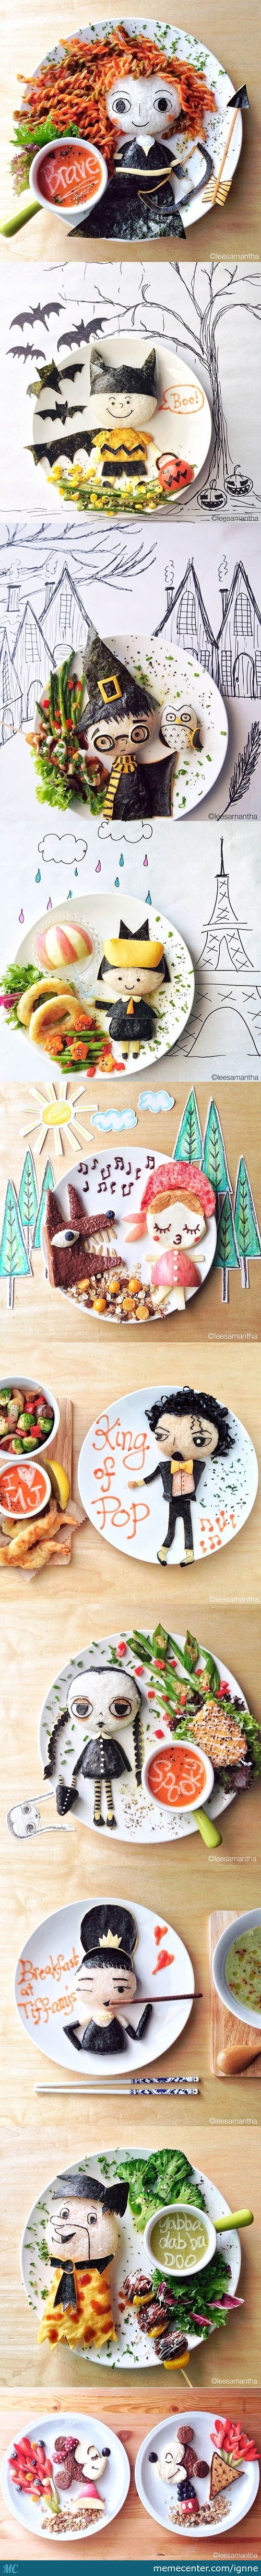 Samantha Lee Food Art